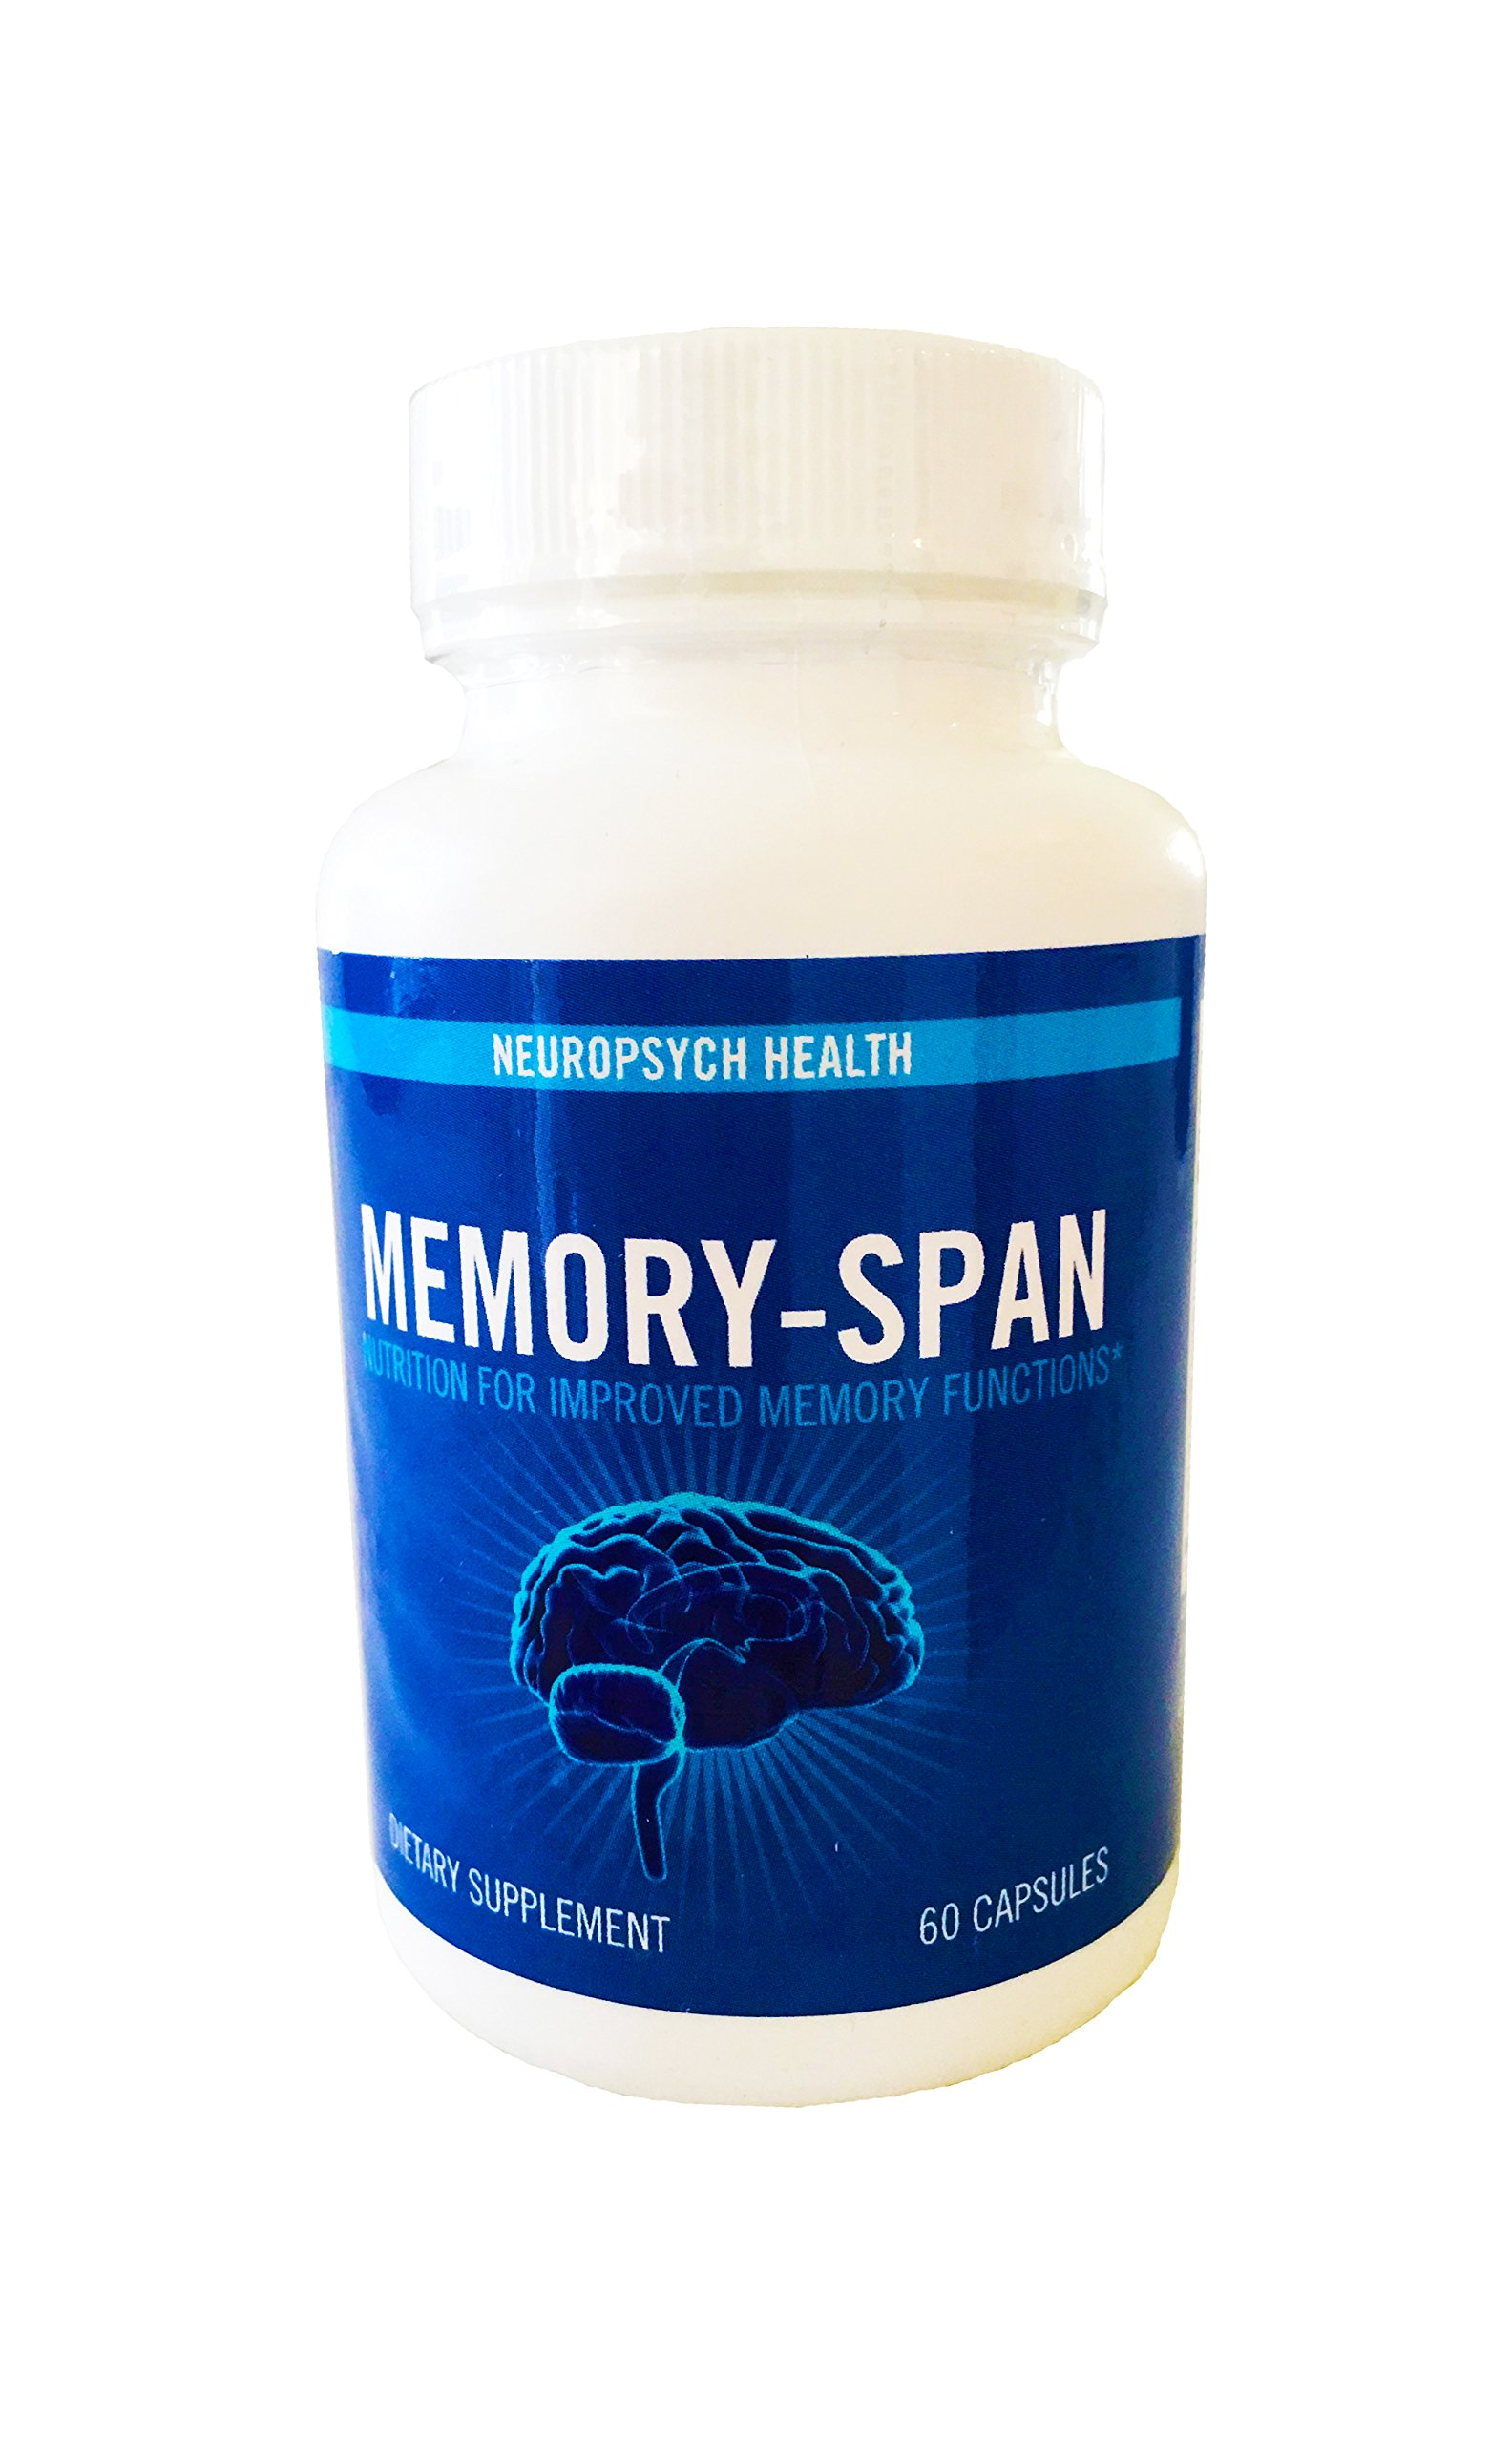 Memory-Span Brain Nootropics Supplement with DMAE, GABA, Vitamin B6 (60 Capsules) Promotes Mental Focus, Clarity, Memory Retention | Energy & Metabolism Booster